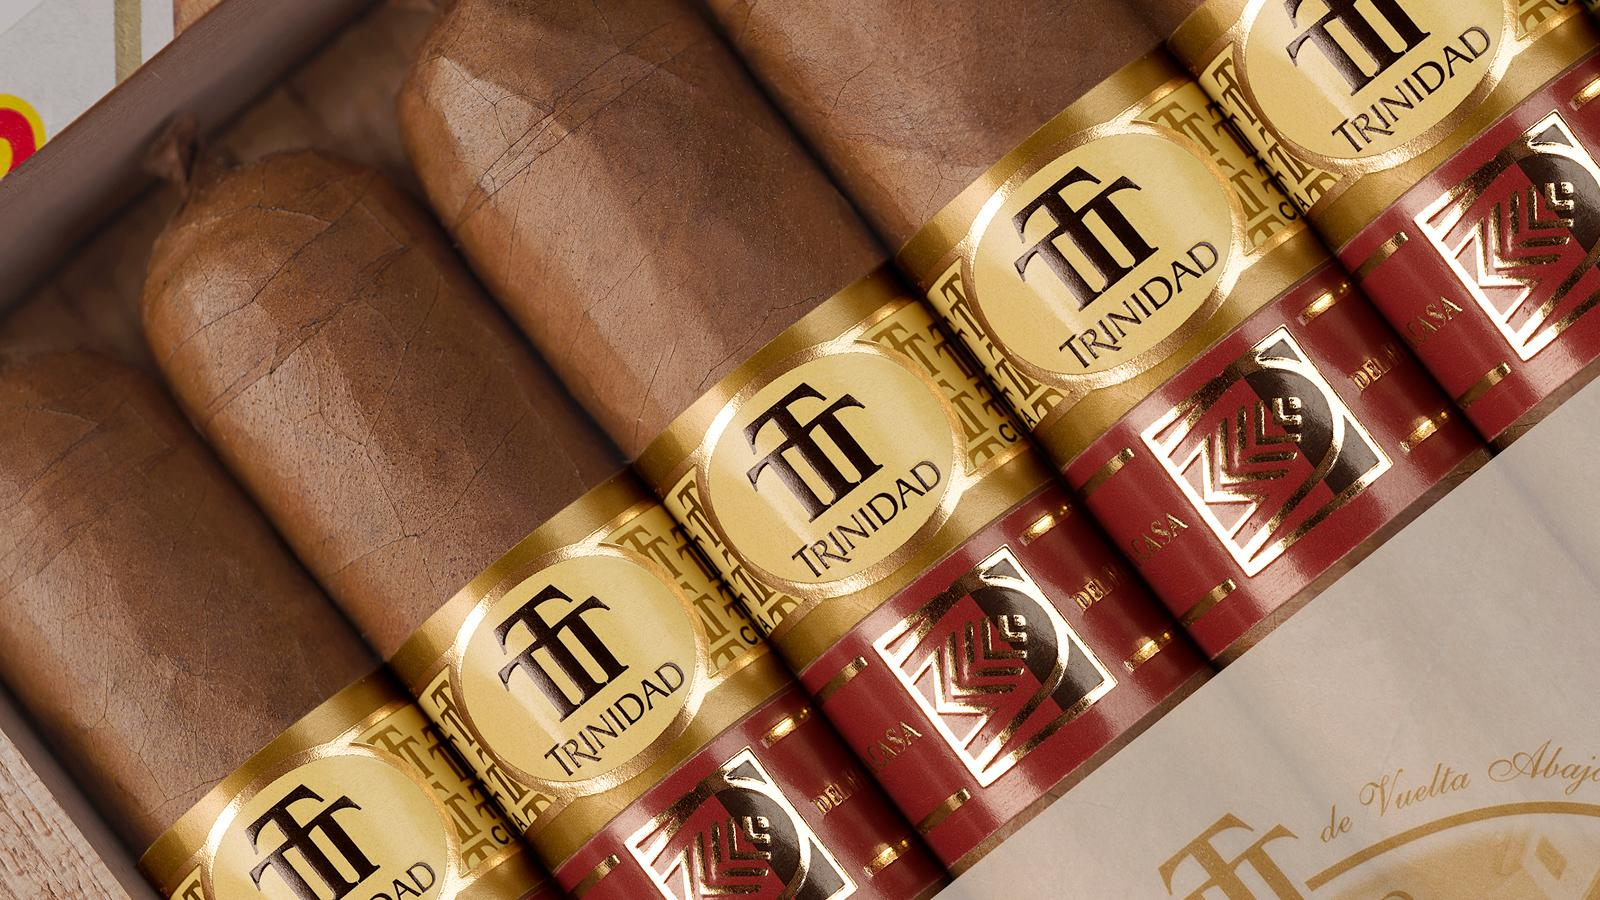 New Cuban Trinidad To Debut in Asia-Pacific Region